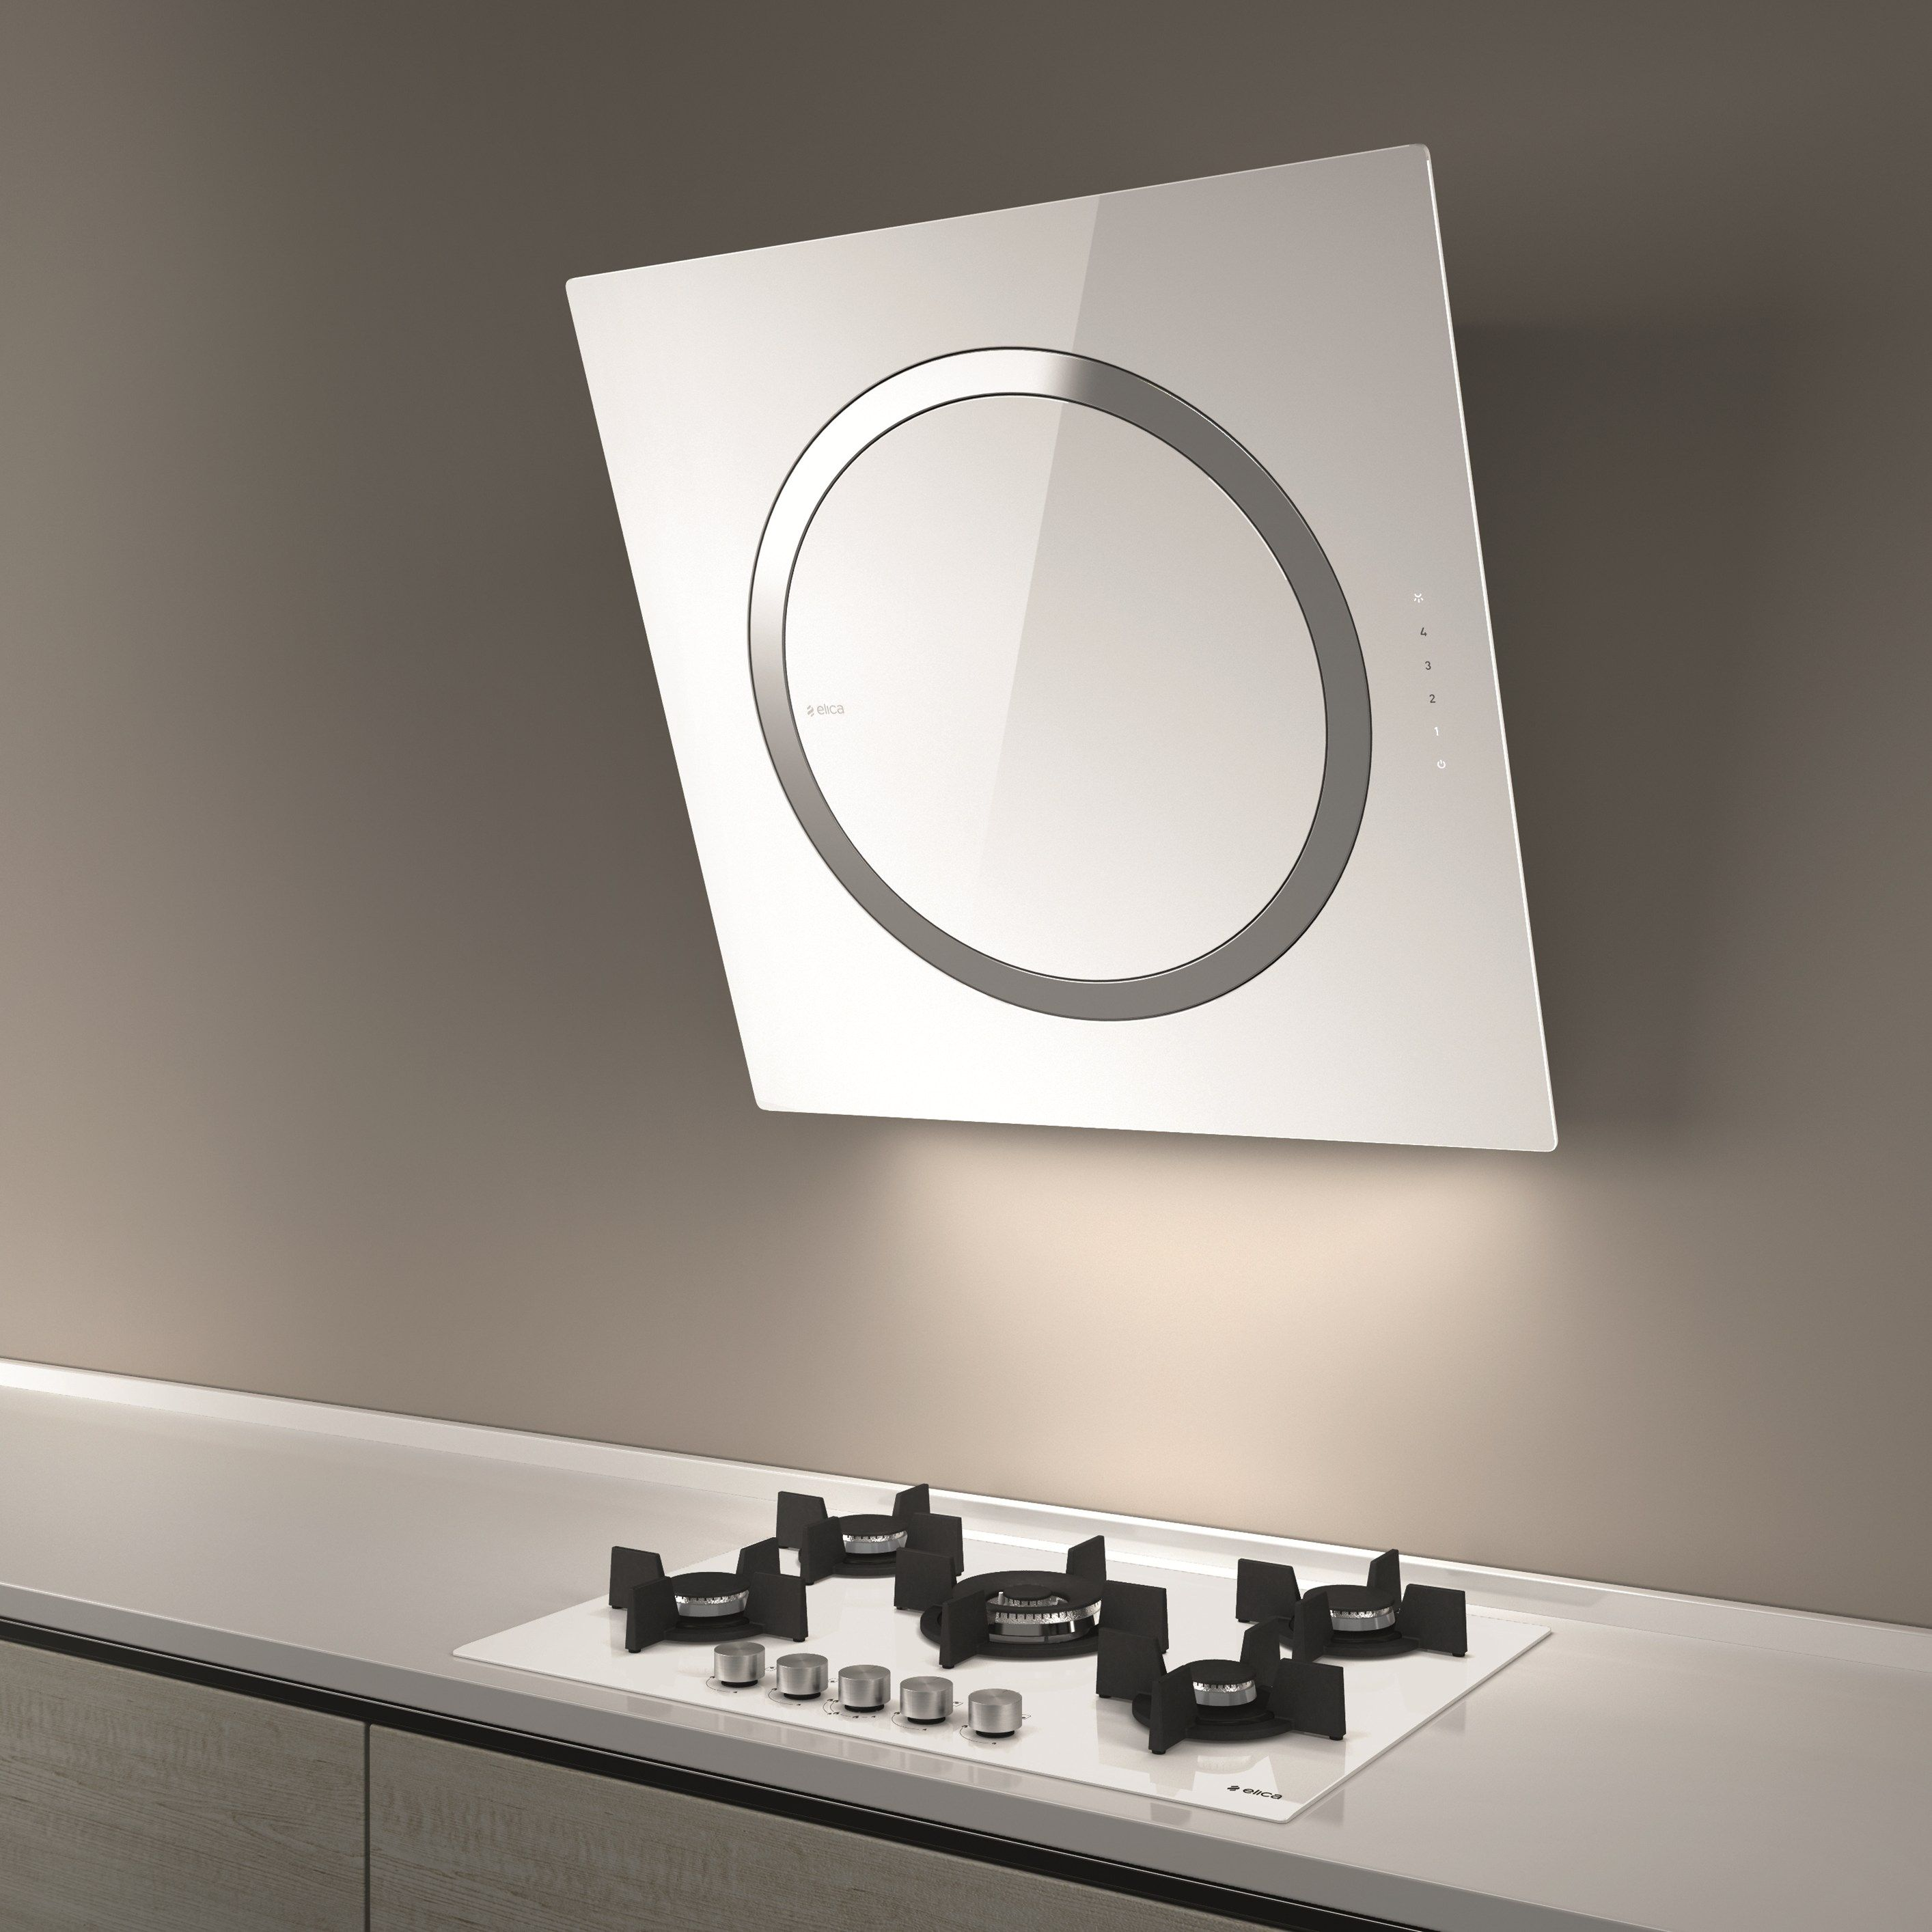 Wall Mounted Cooker Hood Om Om Collection By Elica Design Elica Design Center Cooker Hoods Round Mirror Bathroom Lighted Bathroom Mirror